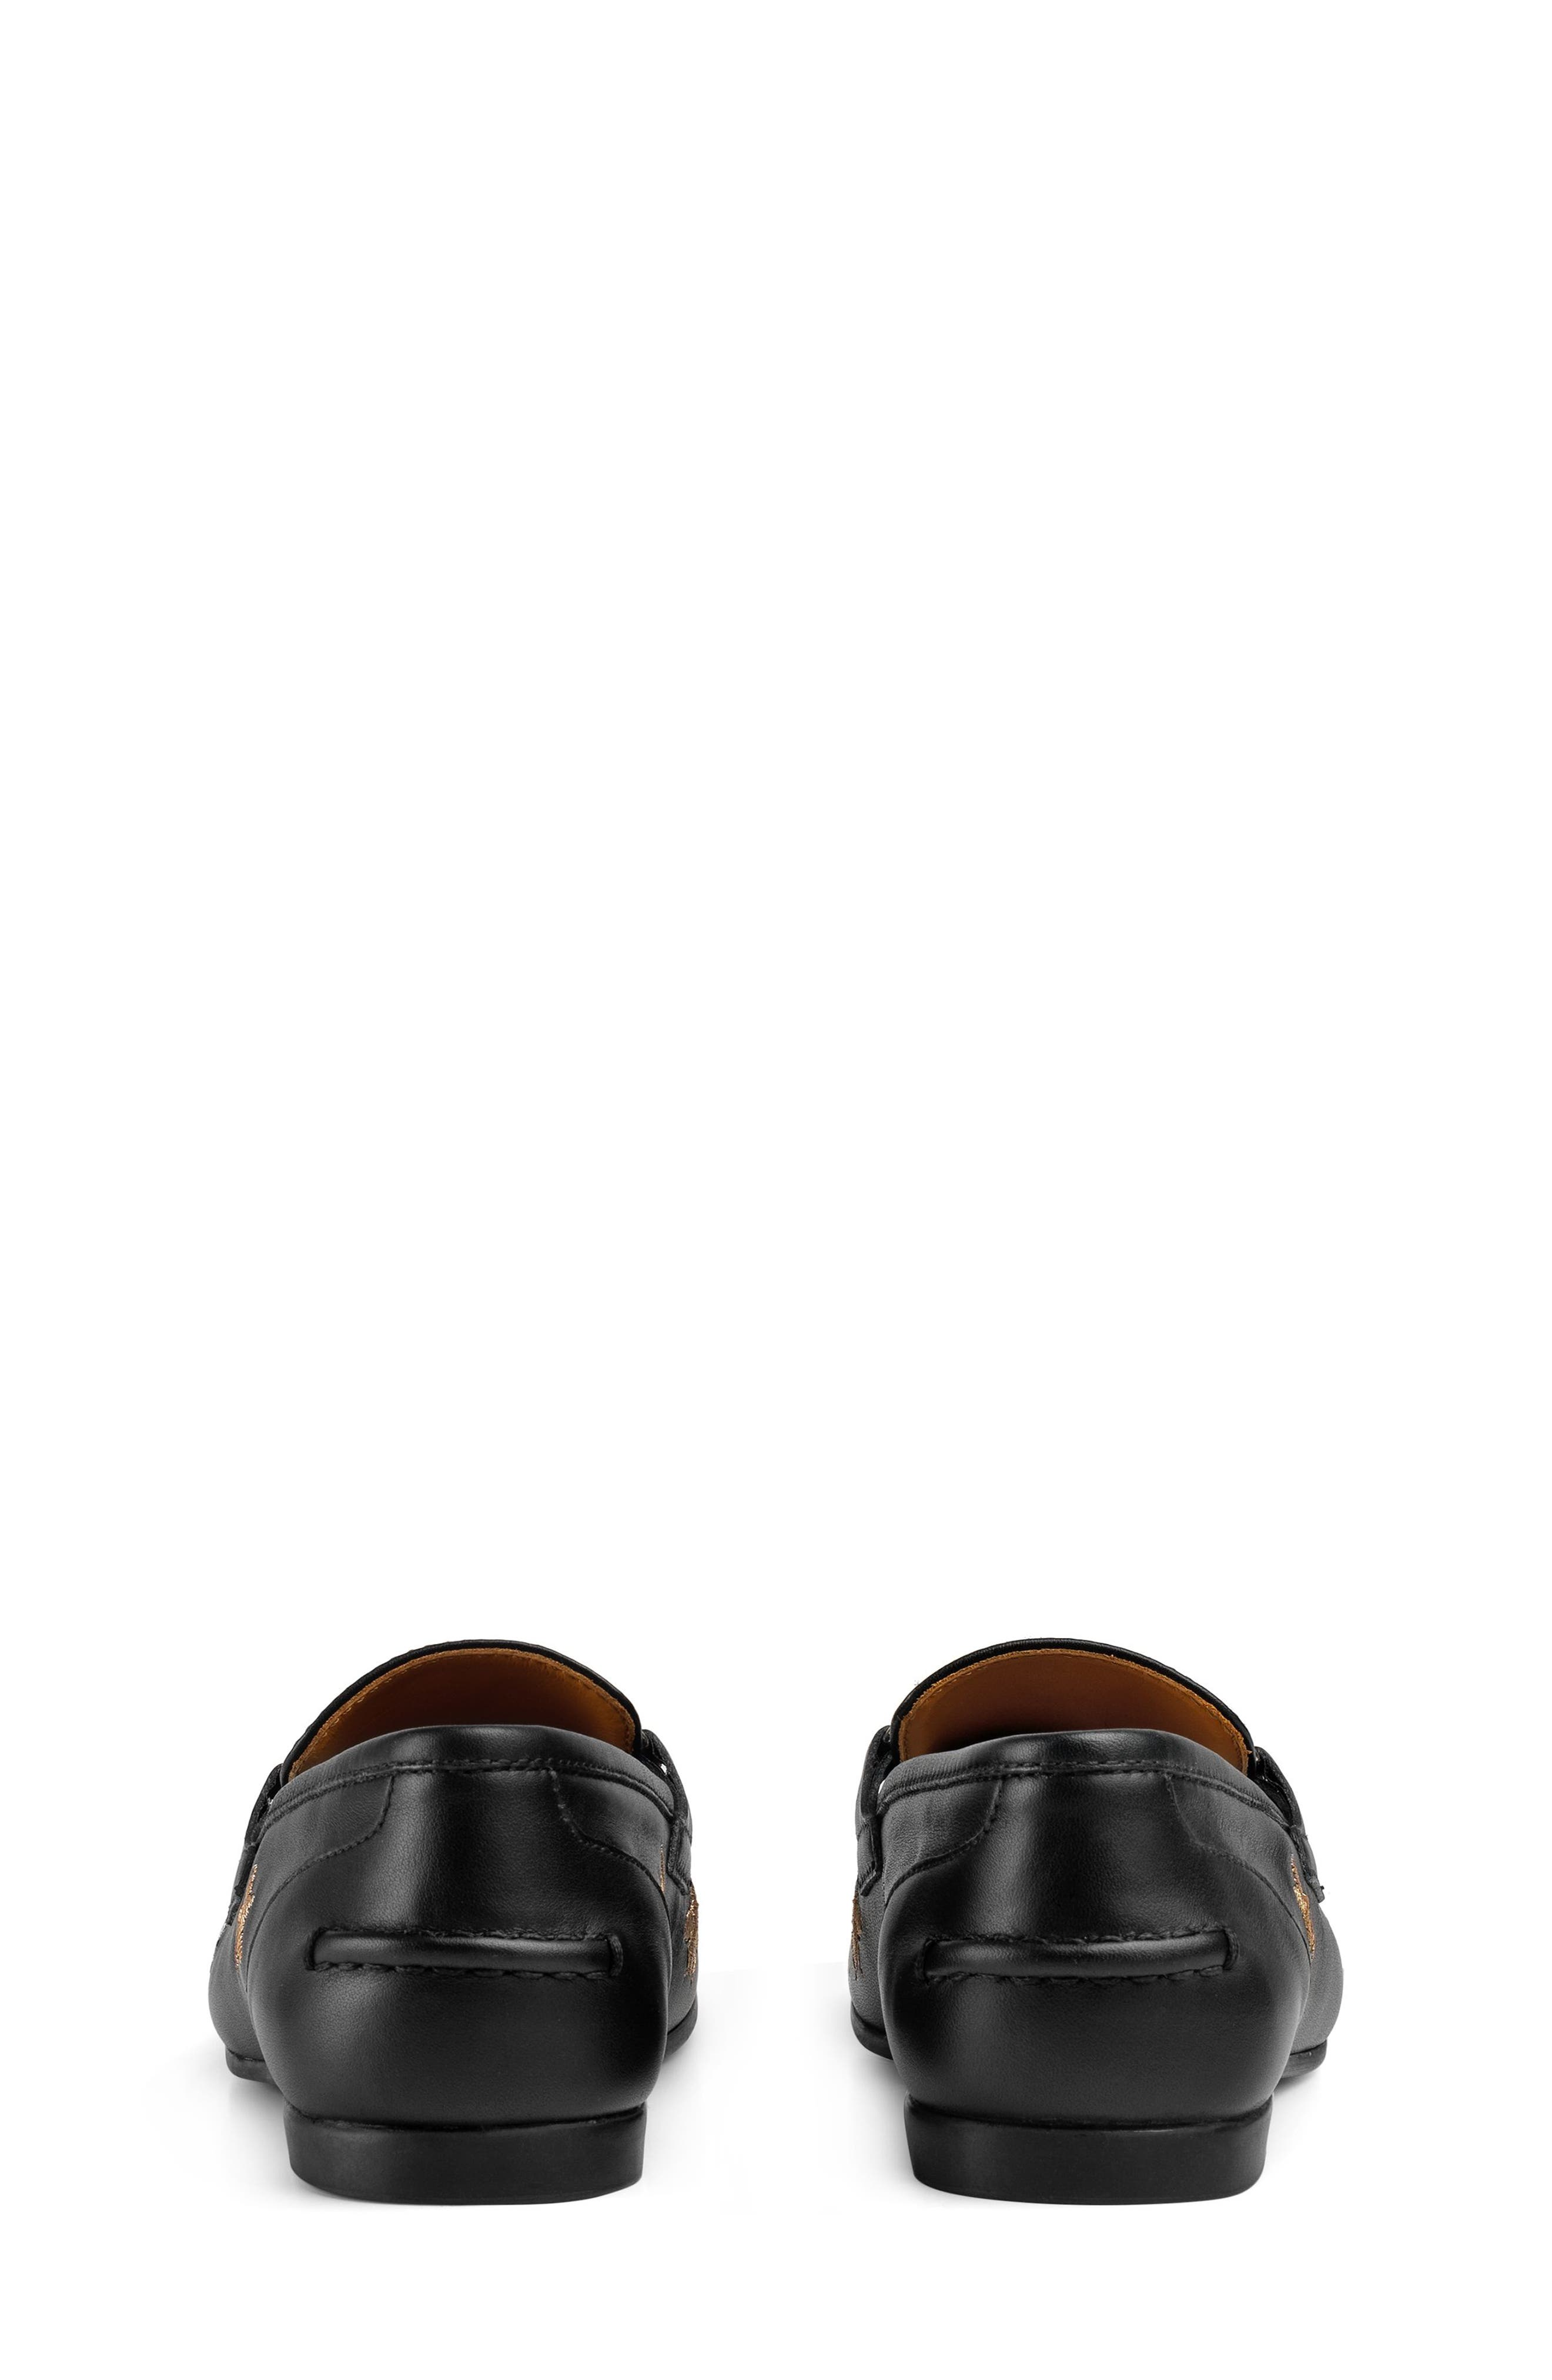 Jordaan Bit Loafer,                             Alternate thumbnail 5, color,                             BLACK